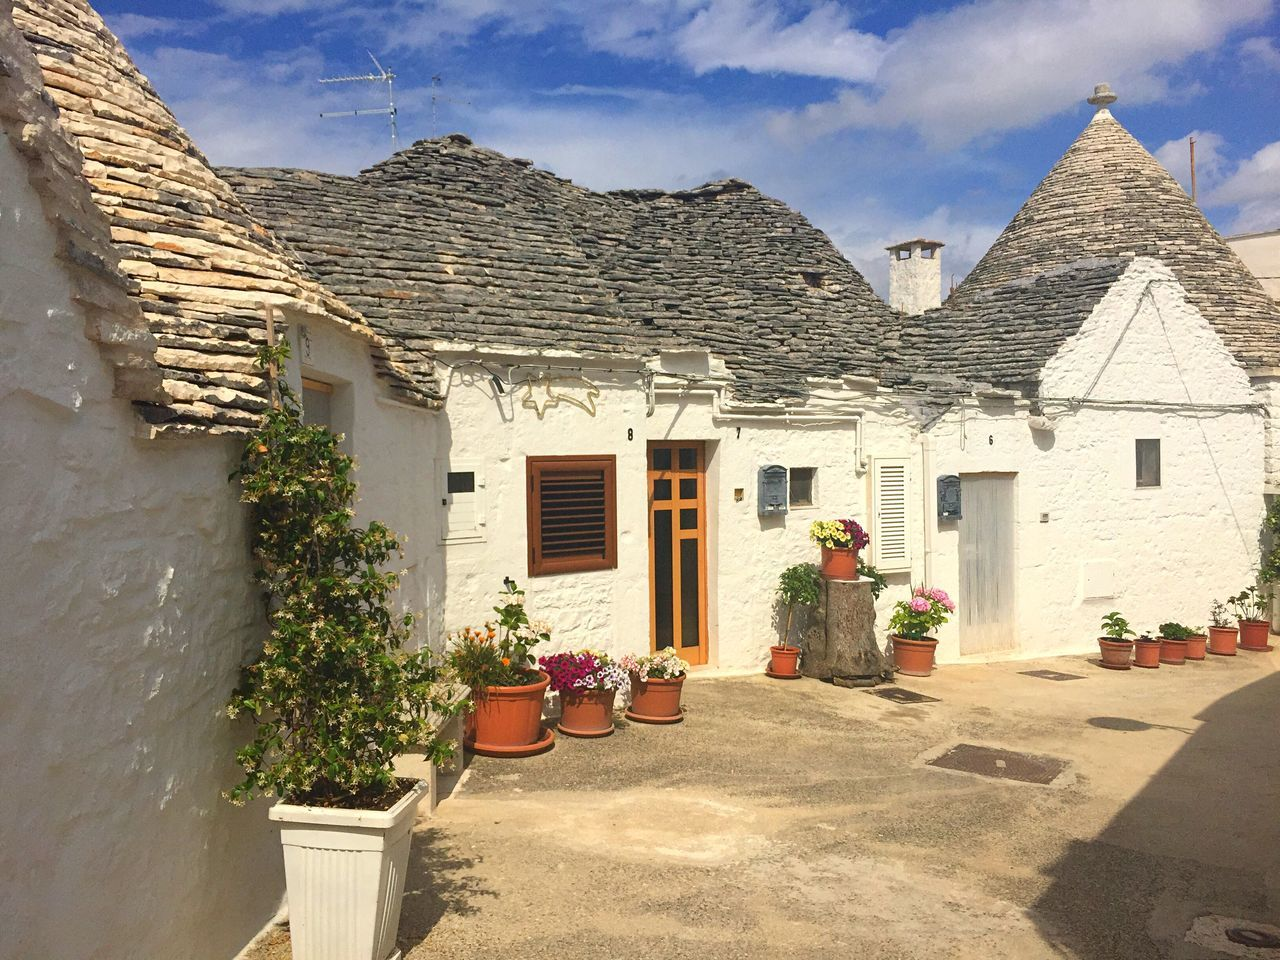 Travelling Travel Photography Italy Holidays Trulli Buildings Vilage Vilage House Historical Building Unesco World Heritage Architecture Exterior Design White Buildings Outside